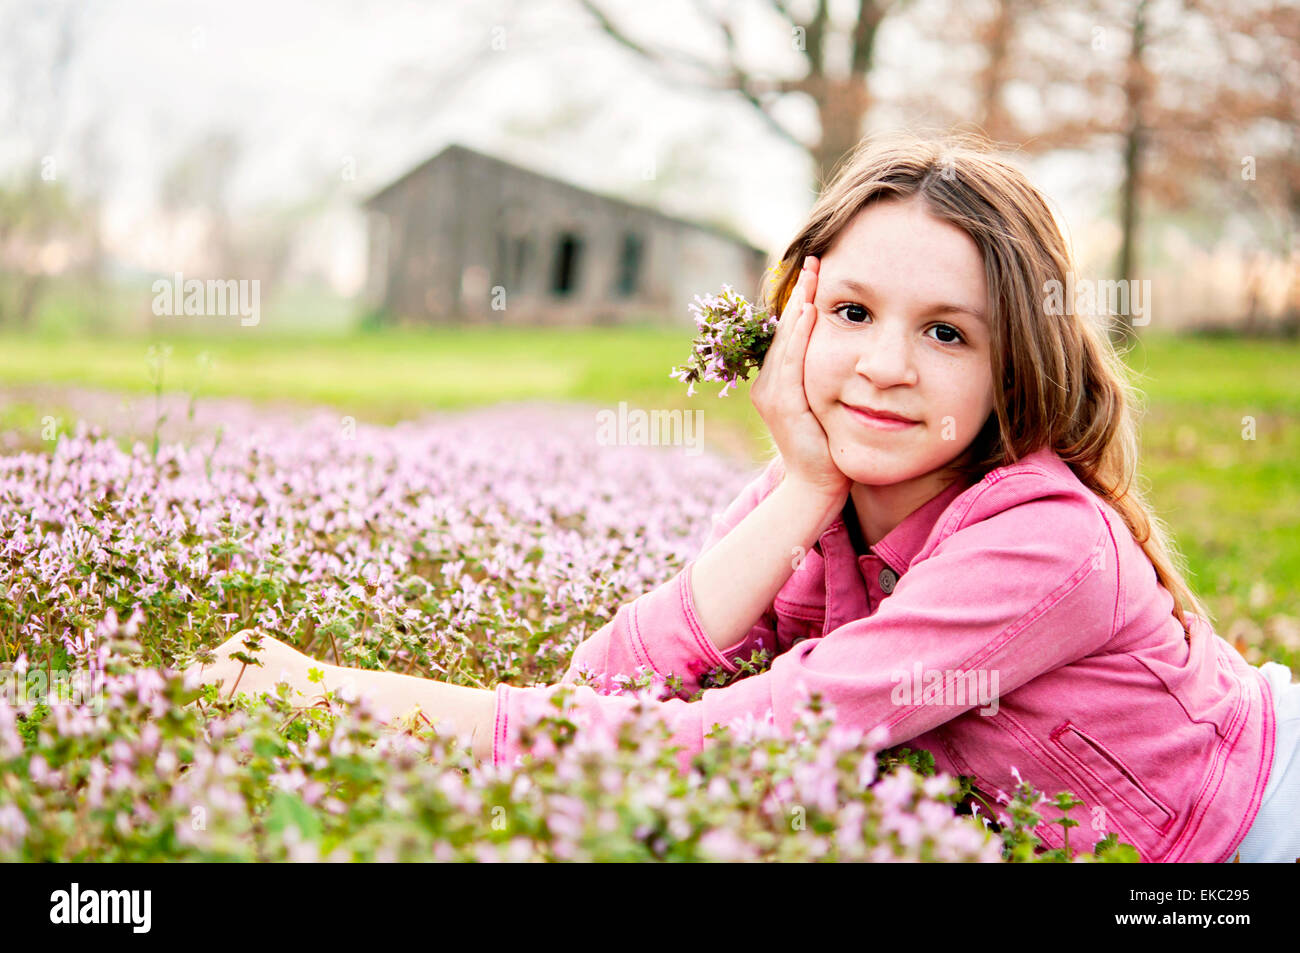 Girl portrait printemps fleurs Photo Stock